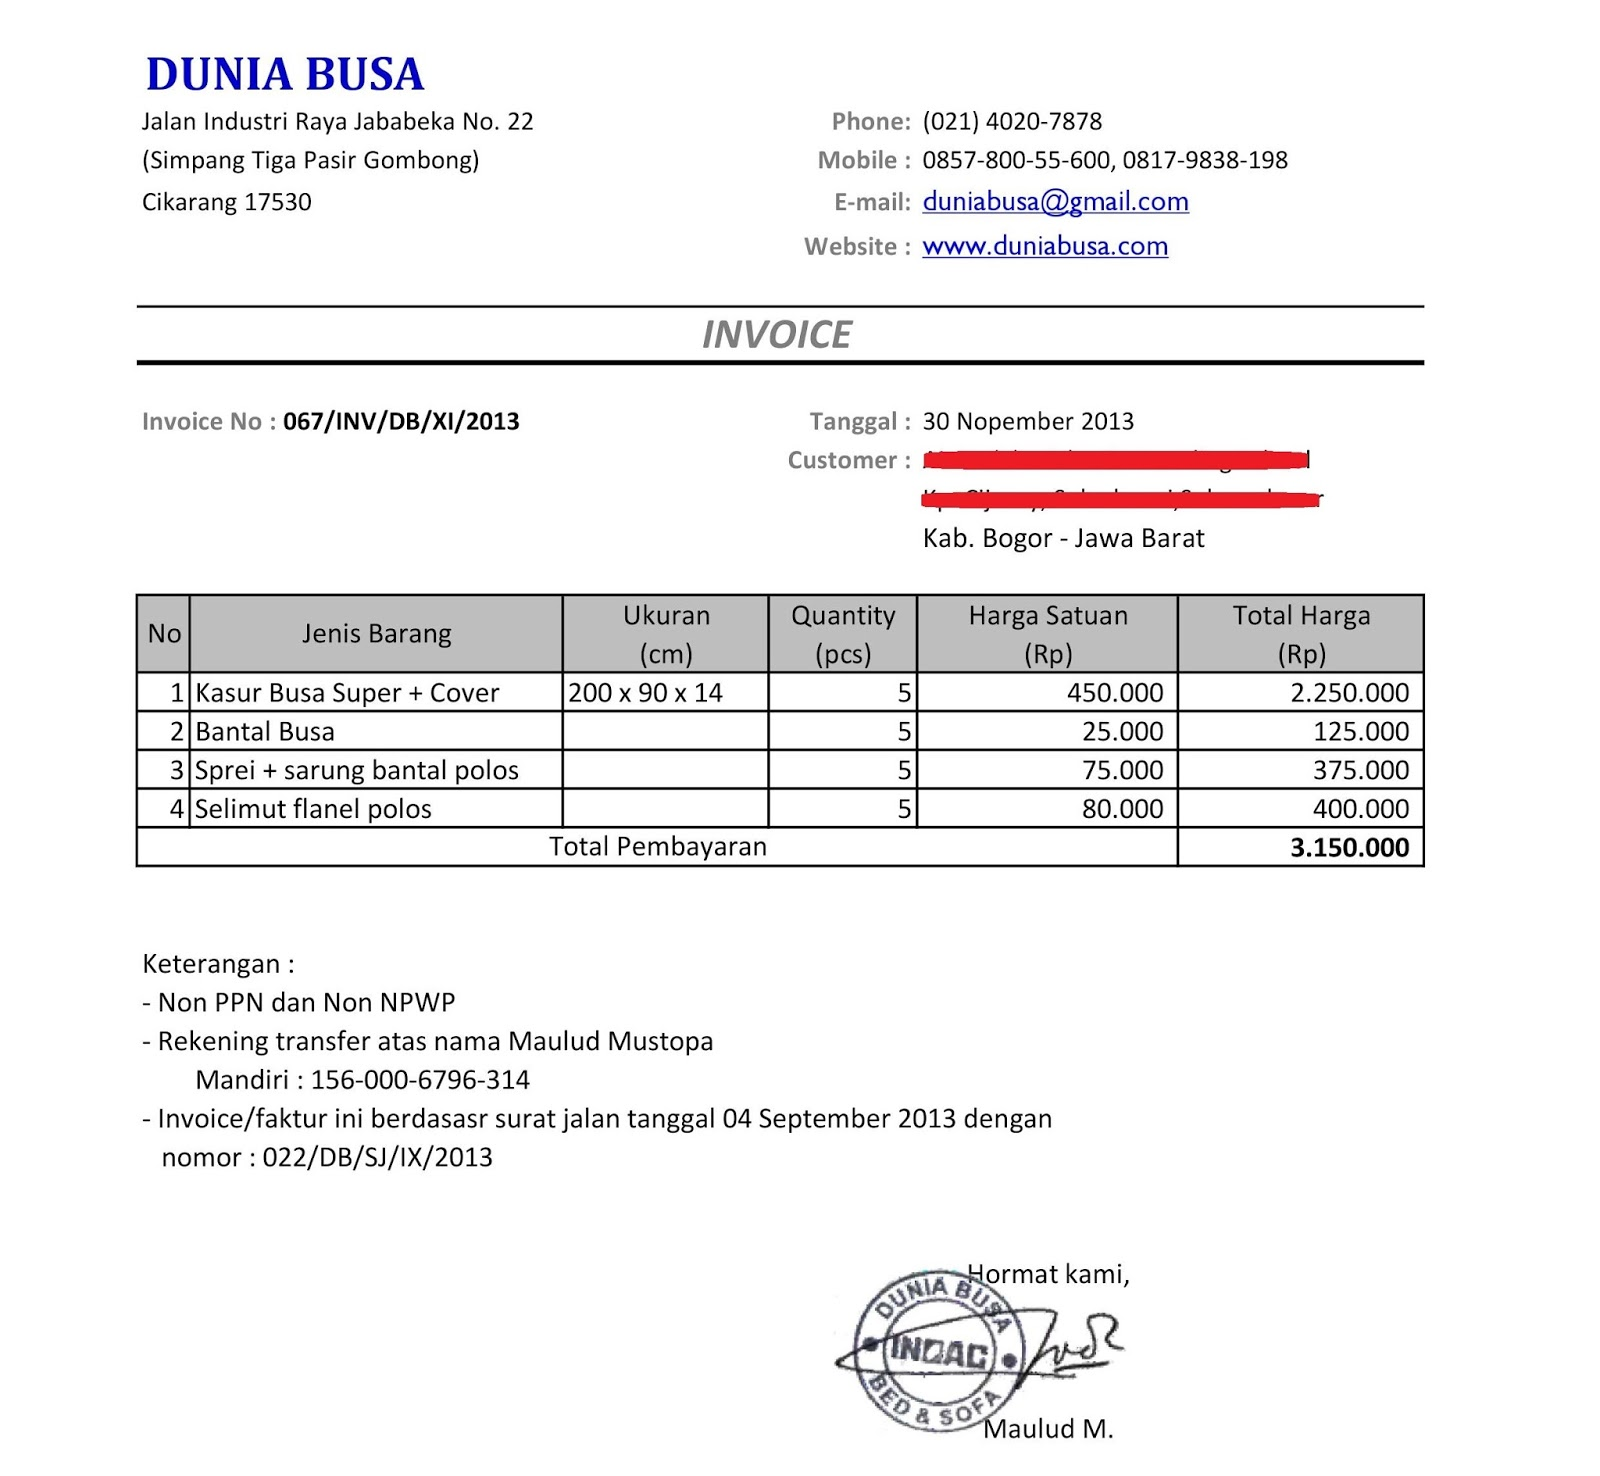 Laceychabertus  Unusual Free Invoice Online  Create Invoice Online  Invoice Template  With Marvelous Contoh Format Invoice Atau Surat Tagihan  Brankas Arsip  Free Invoice Online With Divine How Do You Send Invoice On Paypal Also Pay A Fedex Invoice Online In Addition Write Off Unpaid Invoices And Amazon Invoice Generator As Well As How To Write Payment Terms On Invoice Additionally Download Invoice Format In Word From Sklepco With Laceychabertus  Marvelous Free Invoice Online  Create Invoice Online  Invoice Template  With Divine Contoh Format Invoice Atau Surat Tagihan  Brankas Arsip  Free Invoice Online And Unusual How Do You Send Invoice On Paypal Also Pay A Fedex Invoice Online In Addition Write Off Unpaid Invoices From Sklepco